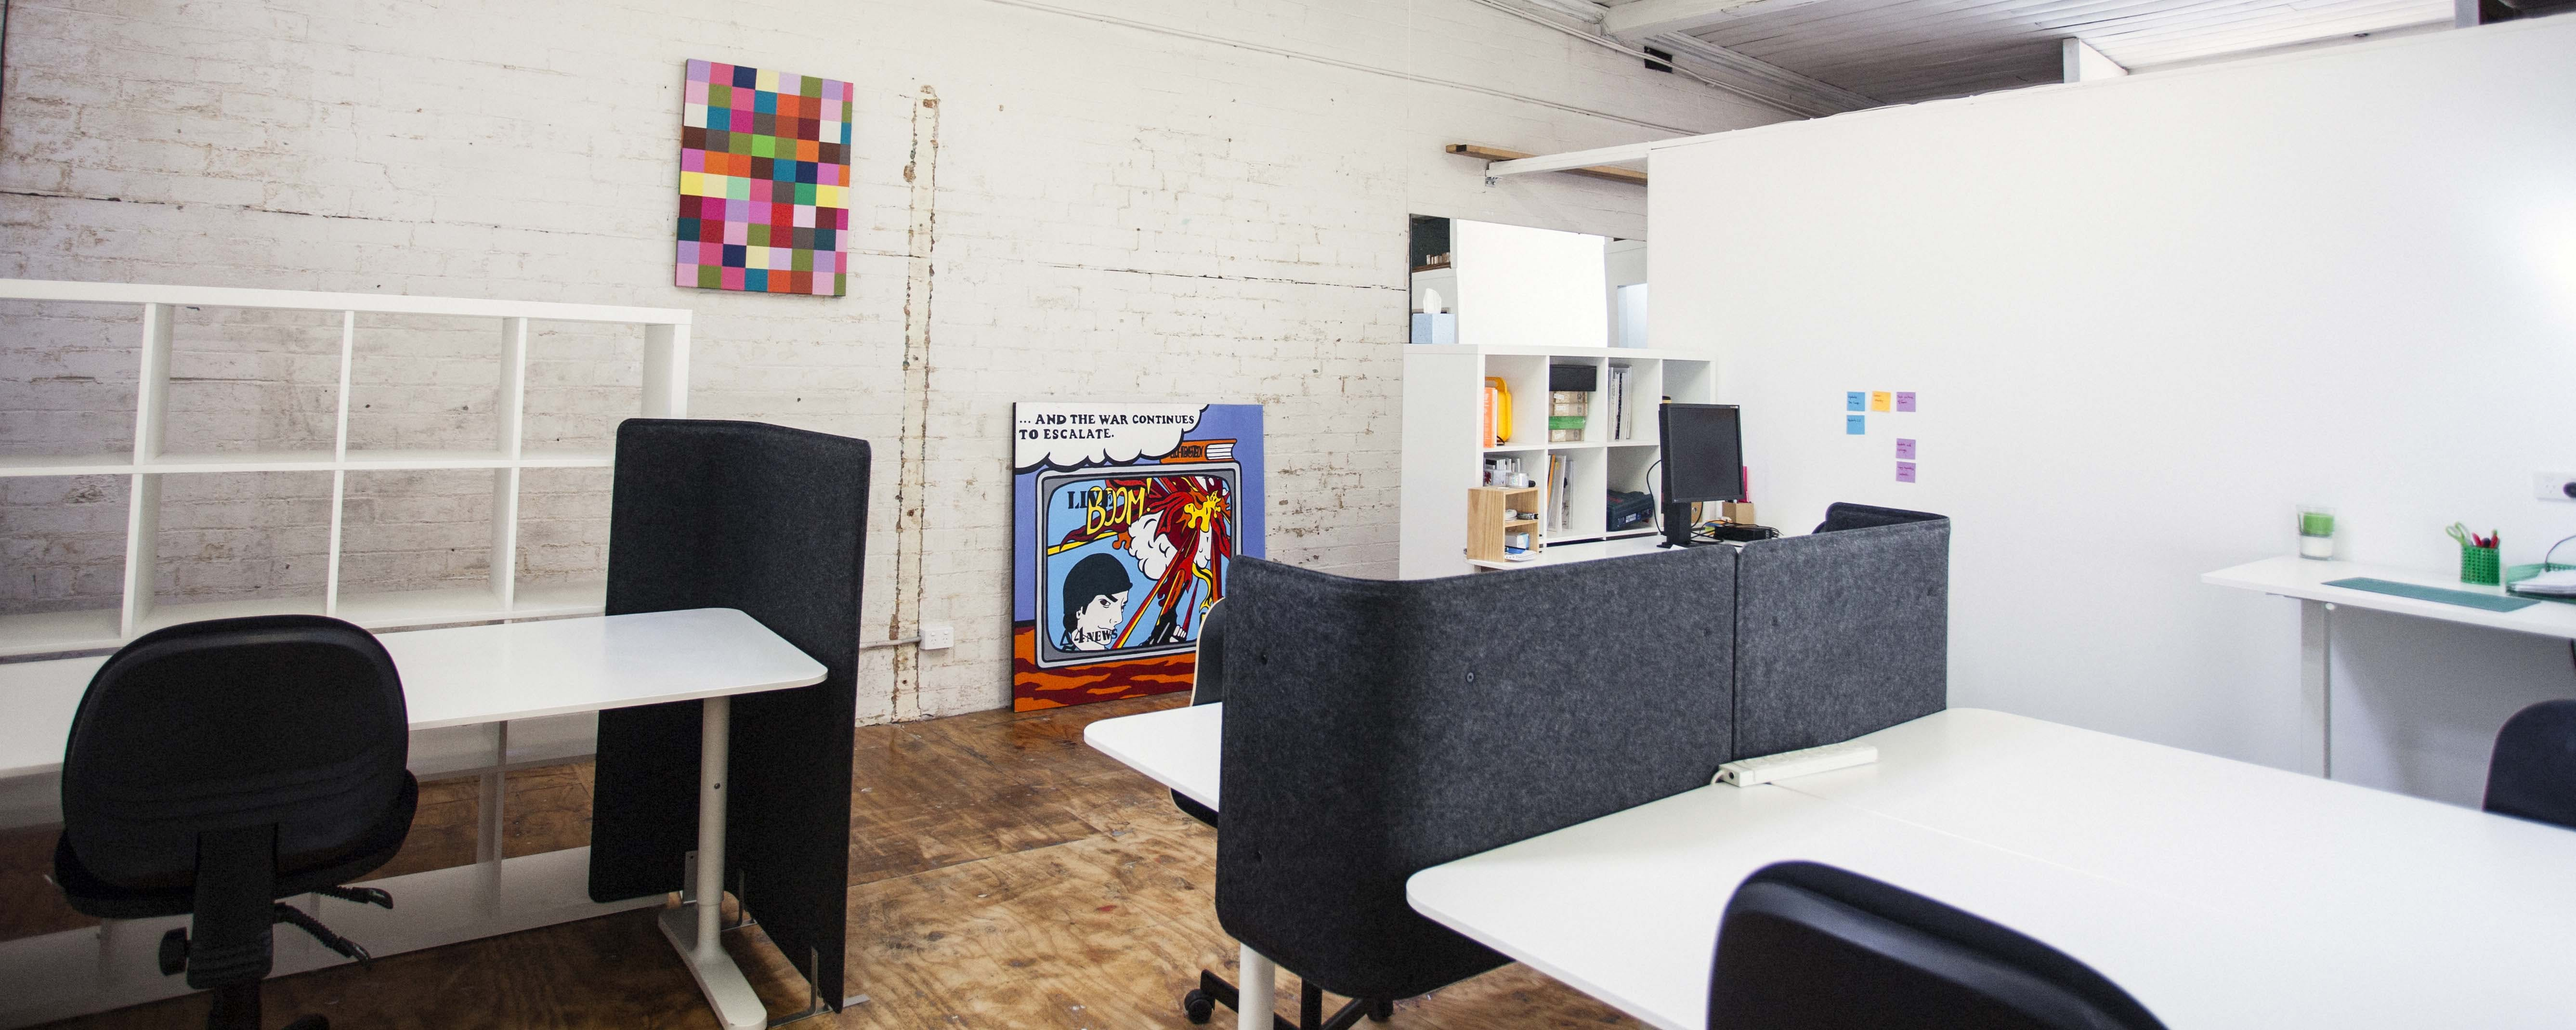 Hot desk at Desk and Studio, image 2